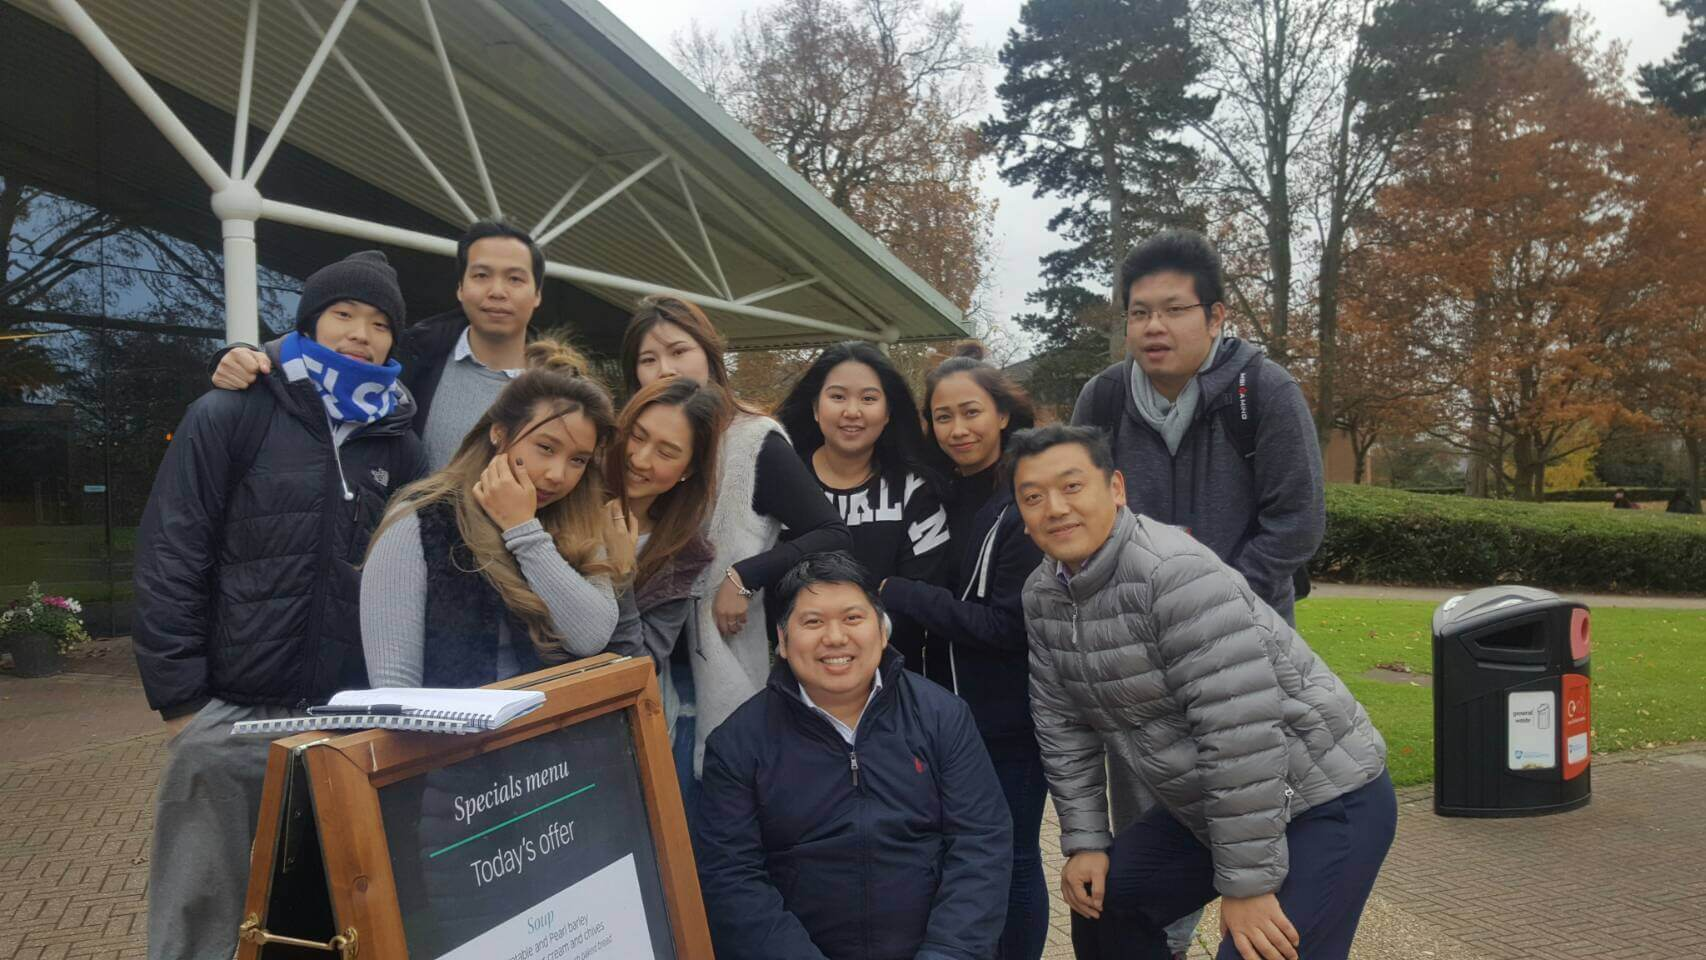 Visiting our students at University of Northampton, England